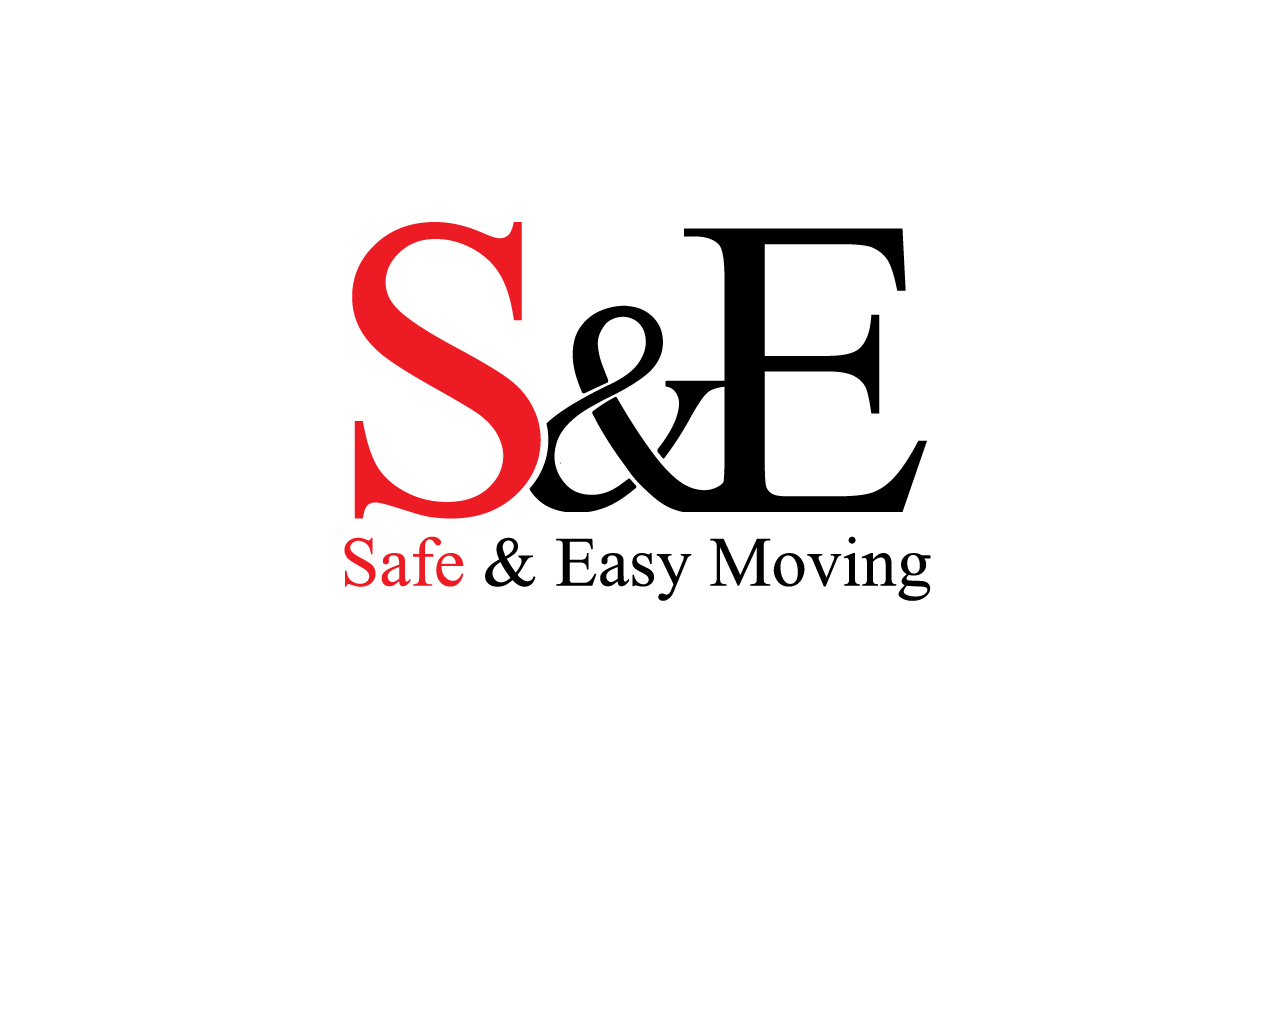 Safe & Easy Moving Inc.